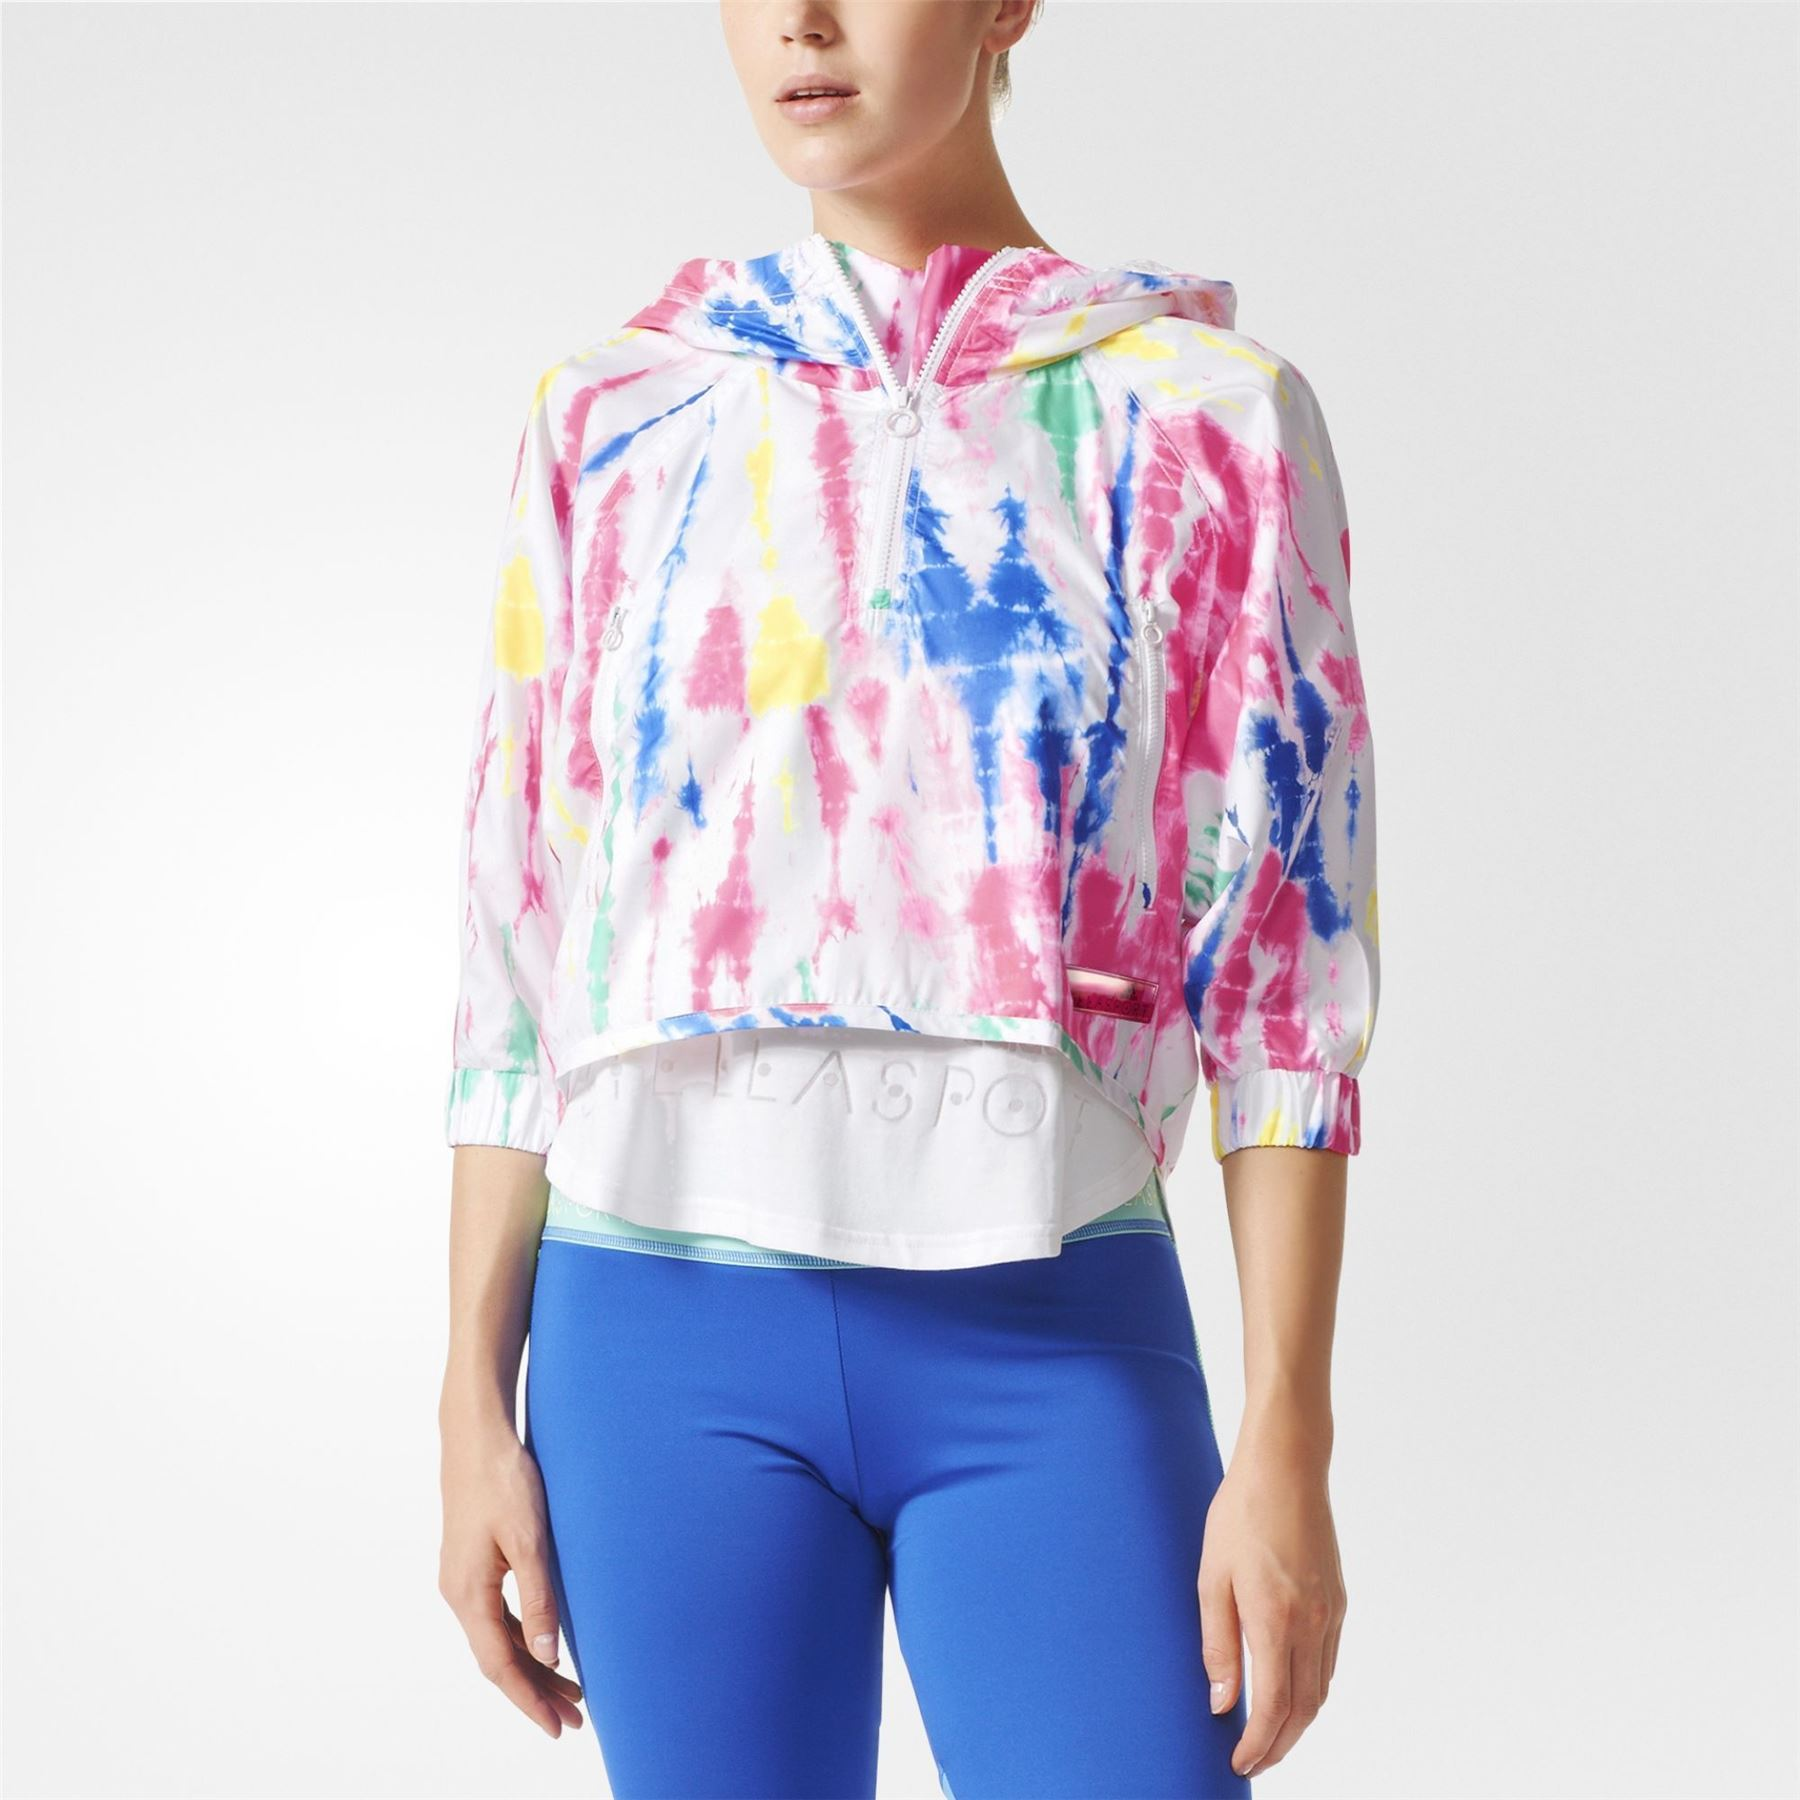 Veste De Sport Légère Bleue Adidas By Stella Mccartney